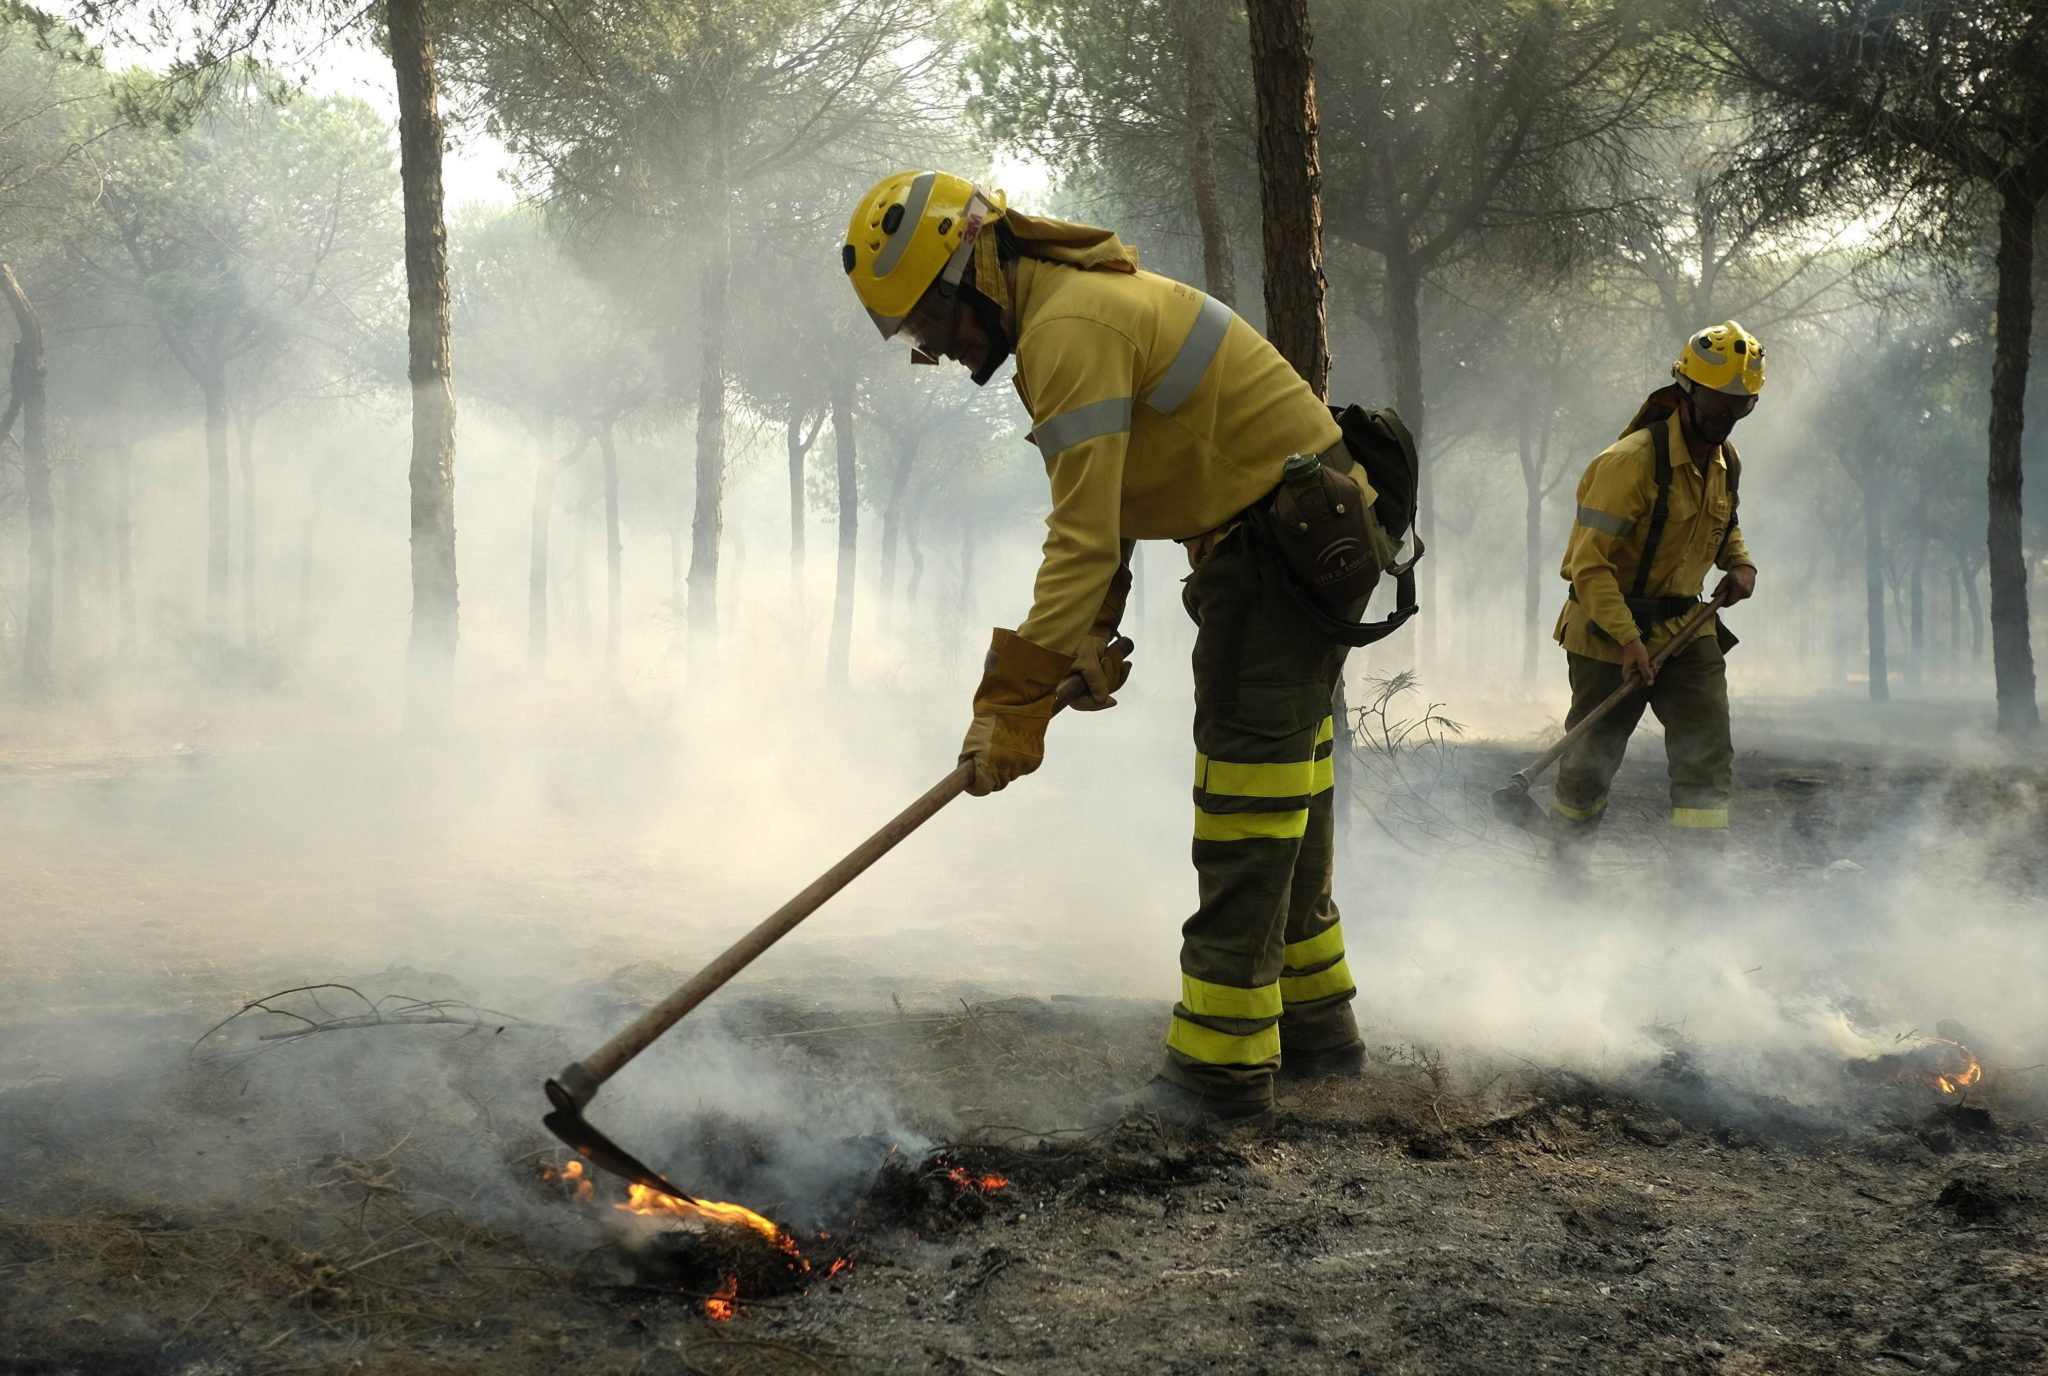 epa06050843 Firefighters work to extinguish the forest fire in Mazagon, Huelva, Spain, 25 June 2017 (issued 26 June 2017). Spanish firefighters and emergency services fight the blaze that broke out at 21:30 local time on 24 June near the Donana nature reserve which is now threatened due to its close proximity. More than 2,000 people were evacuated from their homes, media reports state. The main roads have been reopened while the fire continues active on 26 June 2017.  EPA/JULIAN PEREZ Dostawca: PAP/EPA.